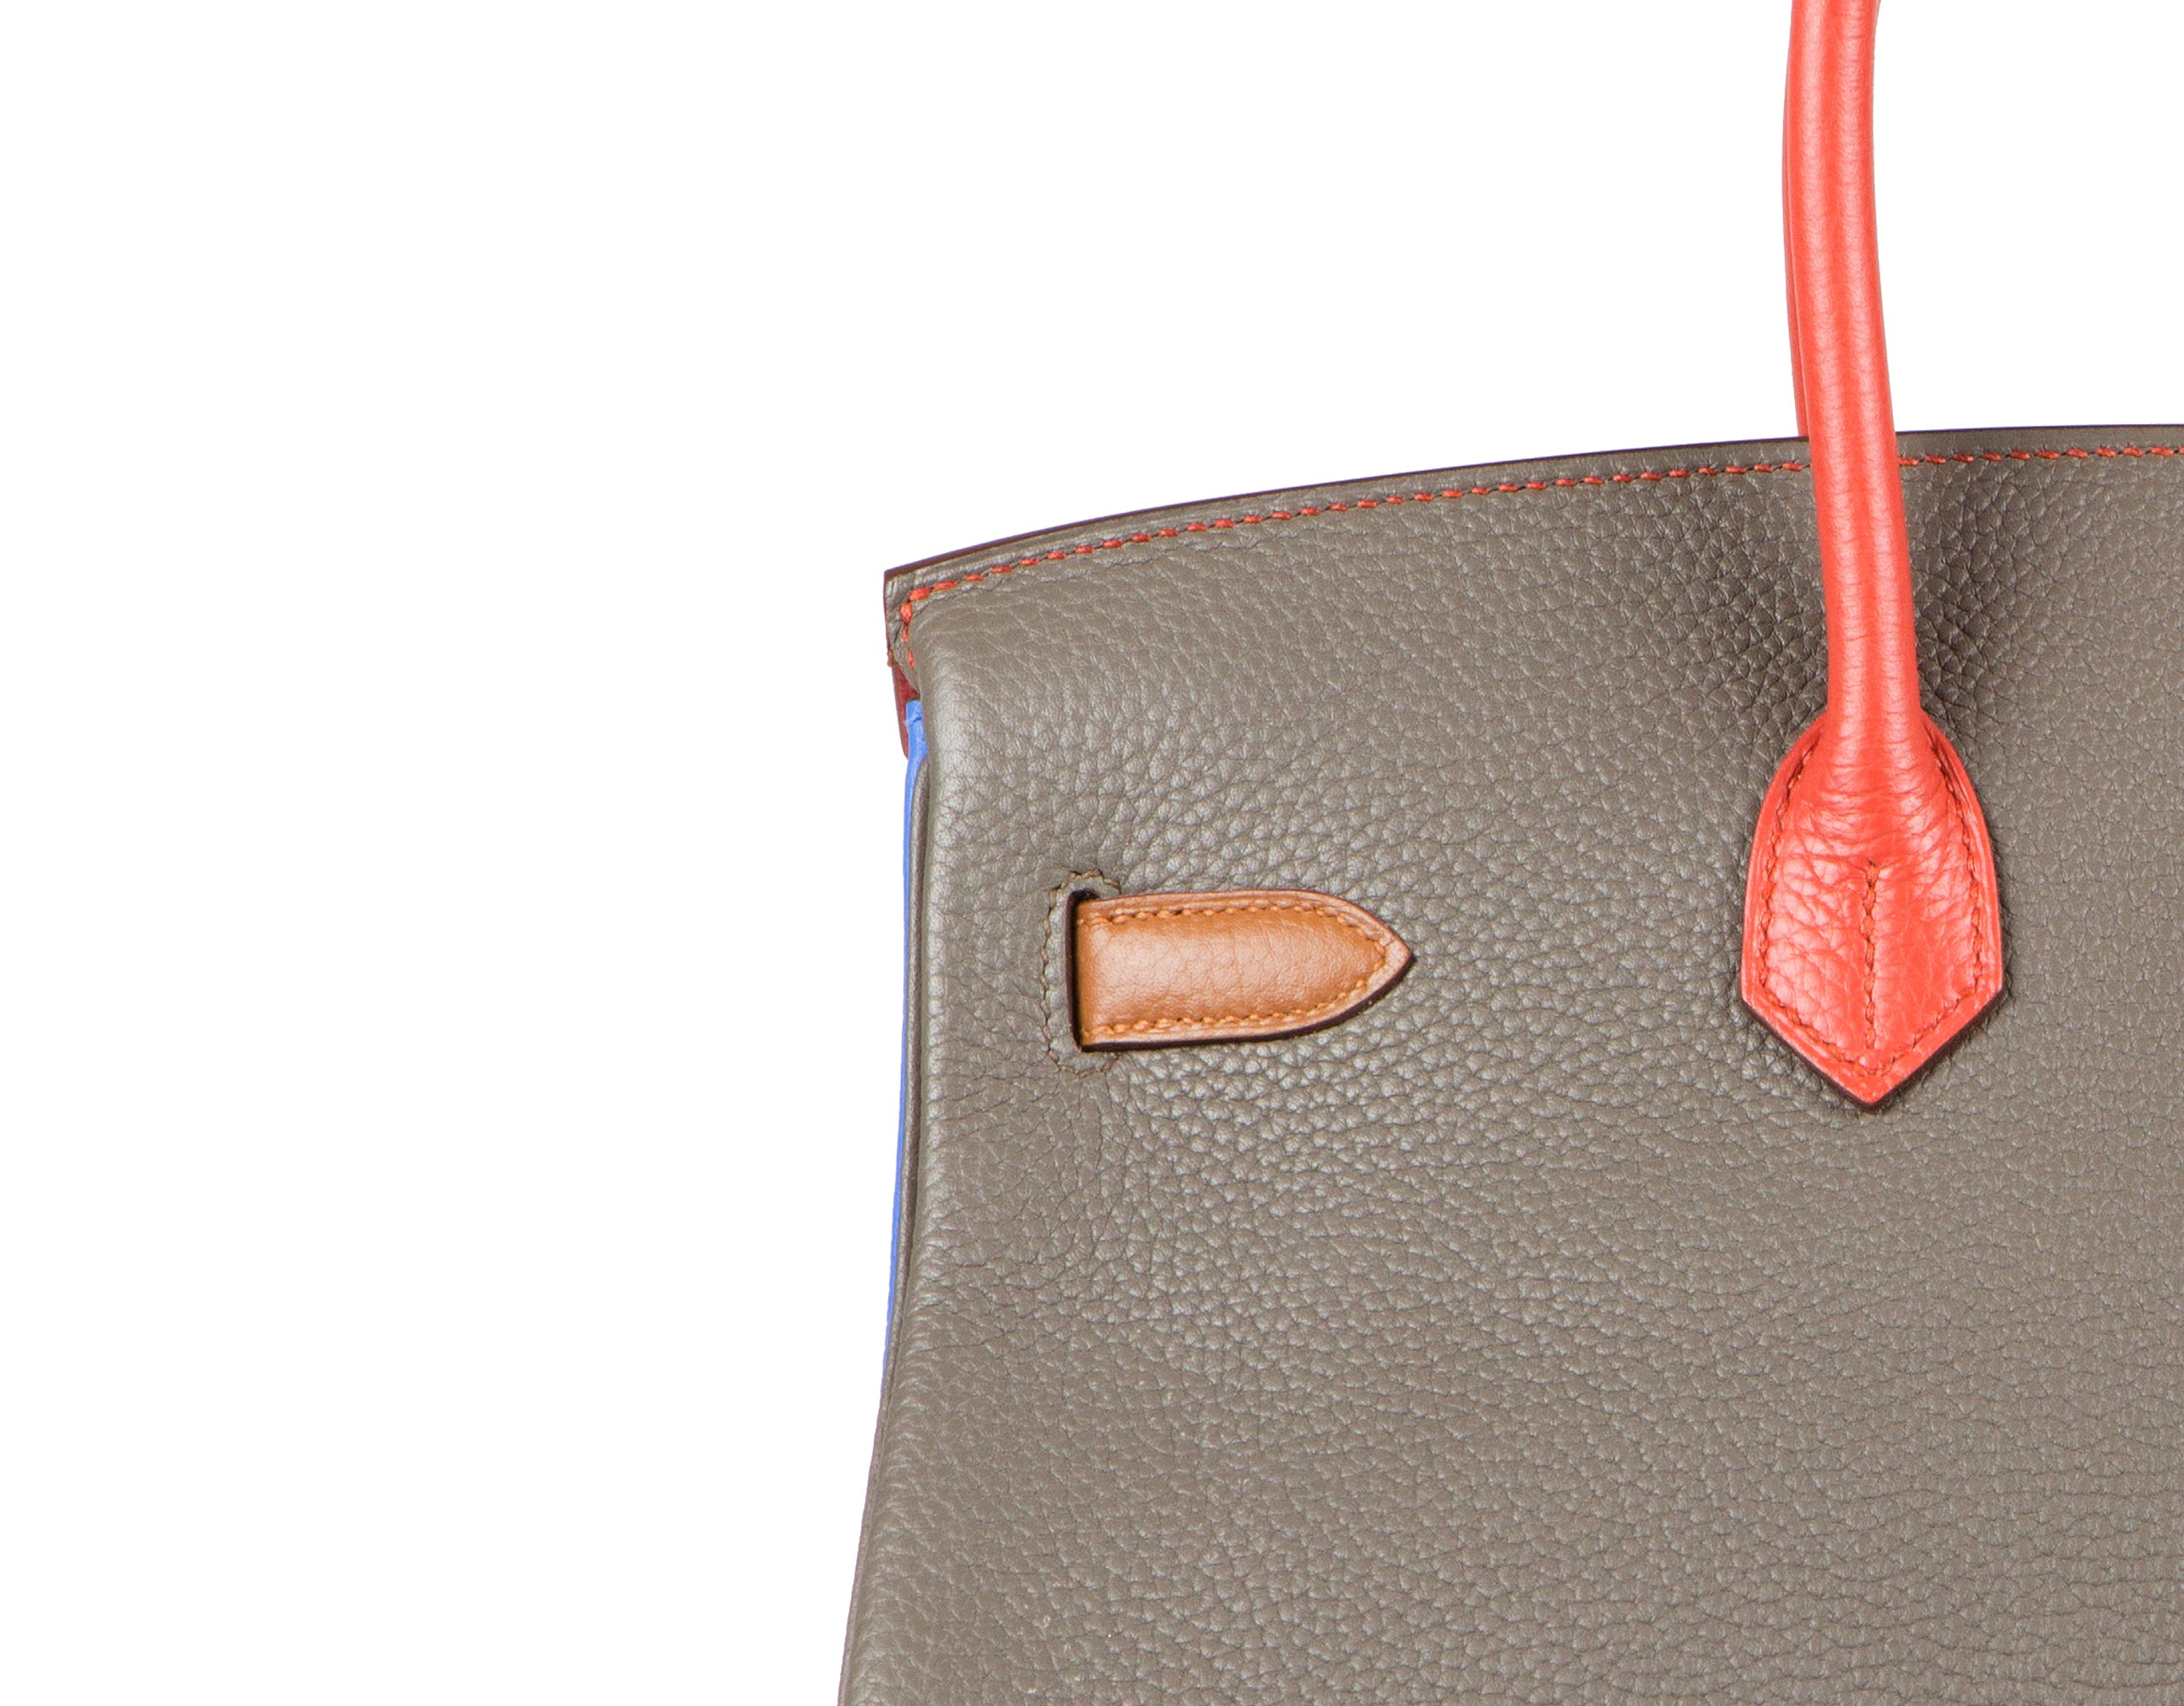 Hermes Bag Birkin Arlequin Multi Colours Clemence 35cm B115 Stitching